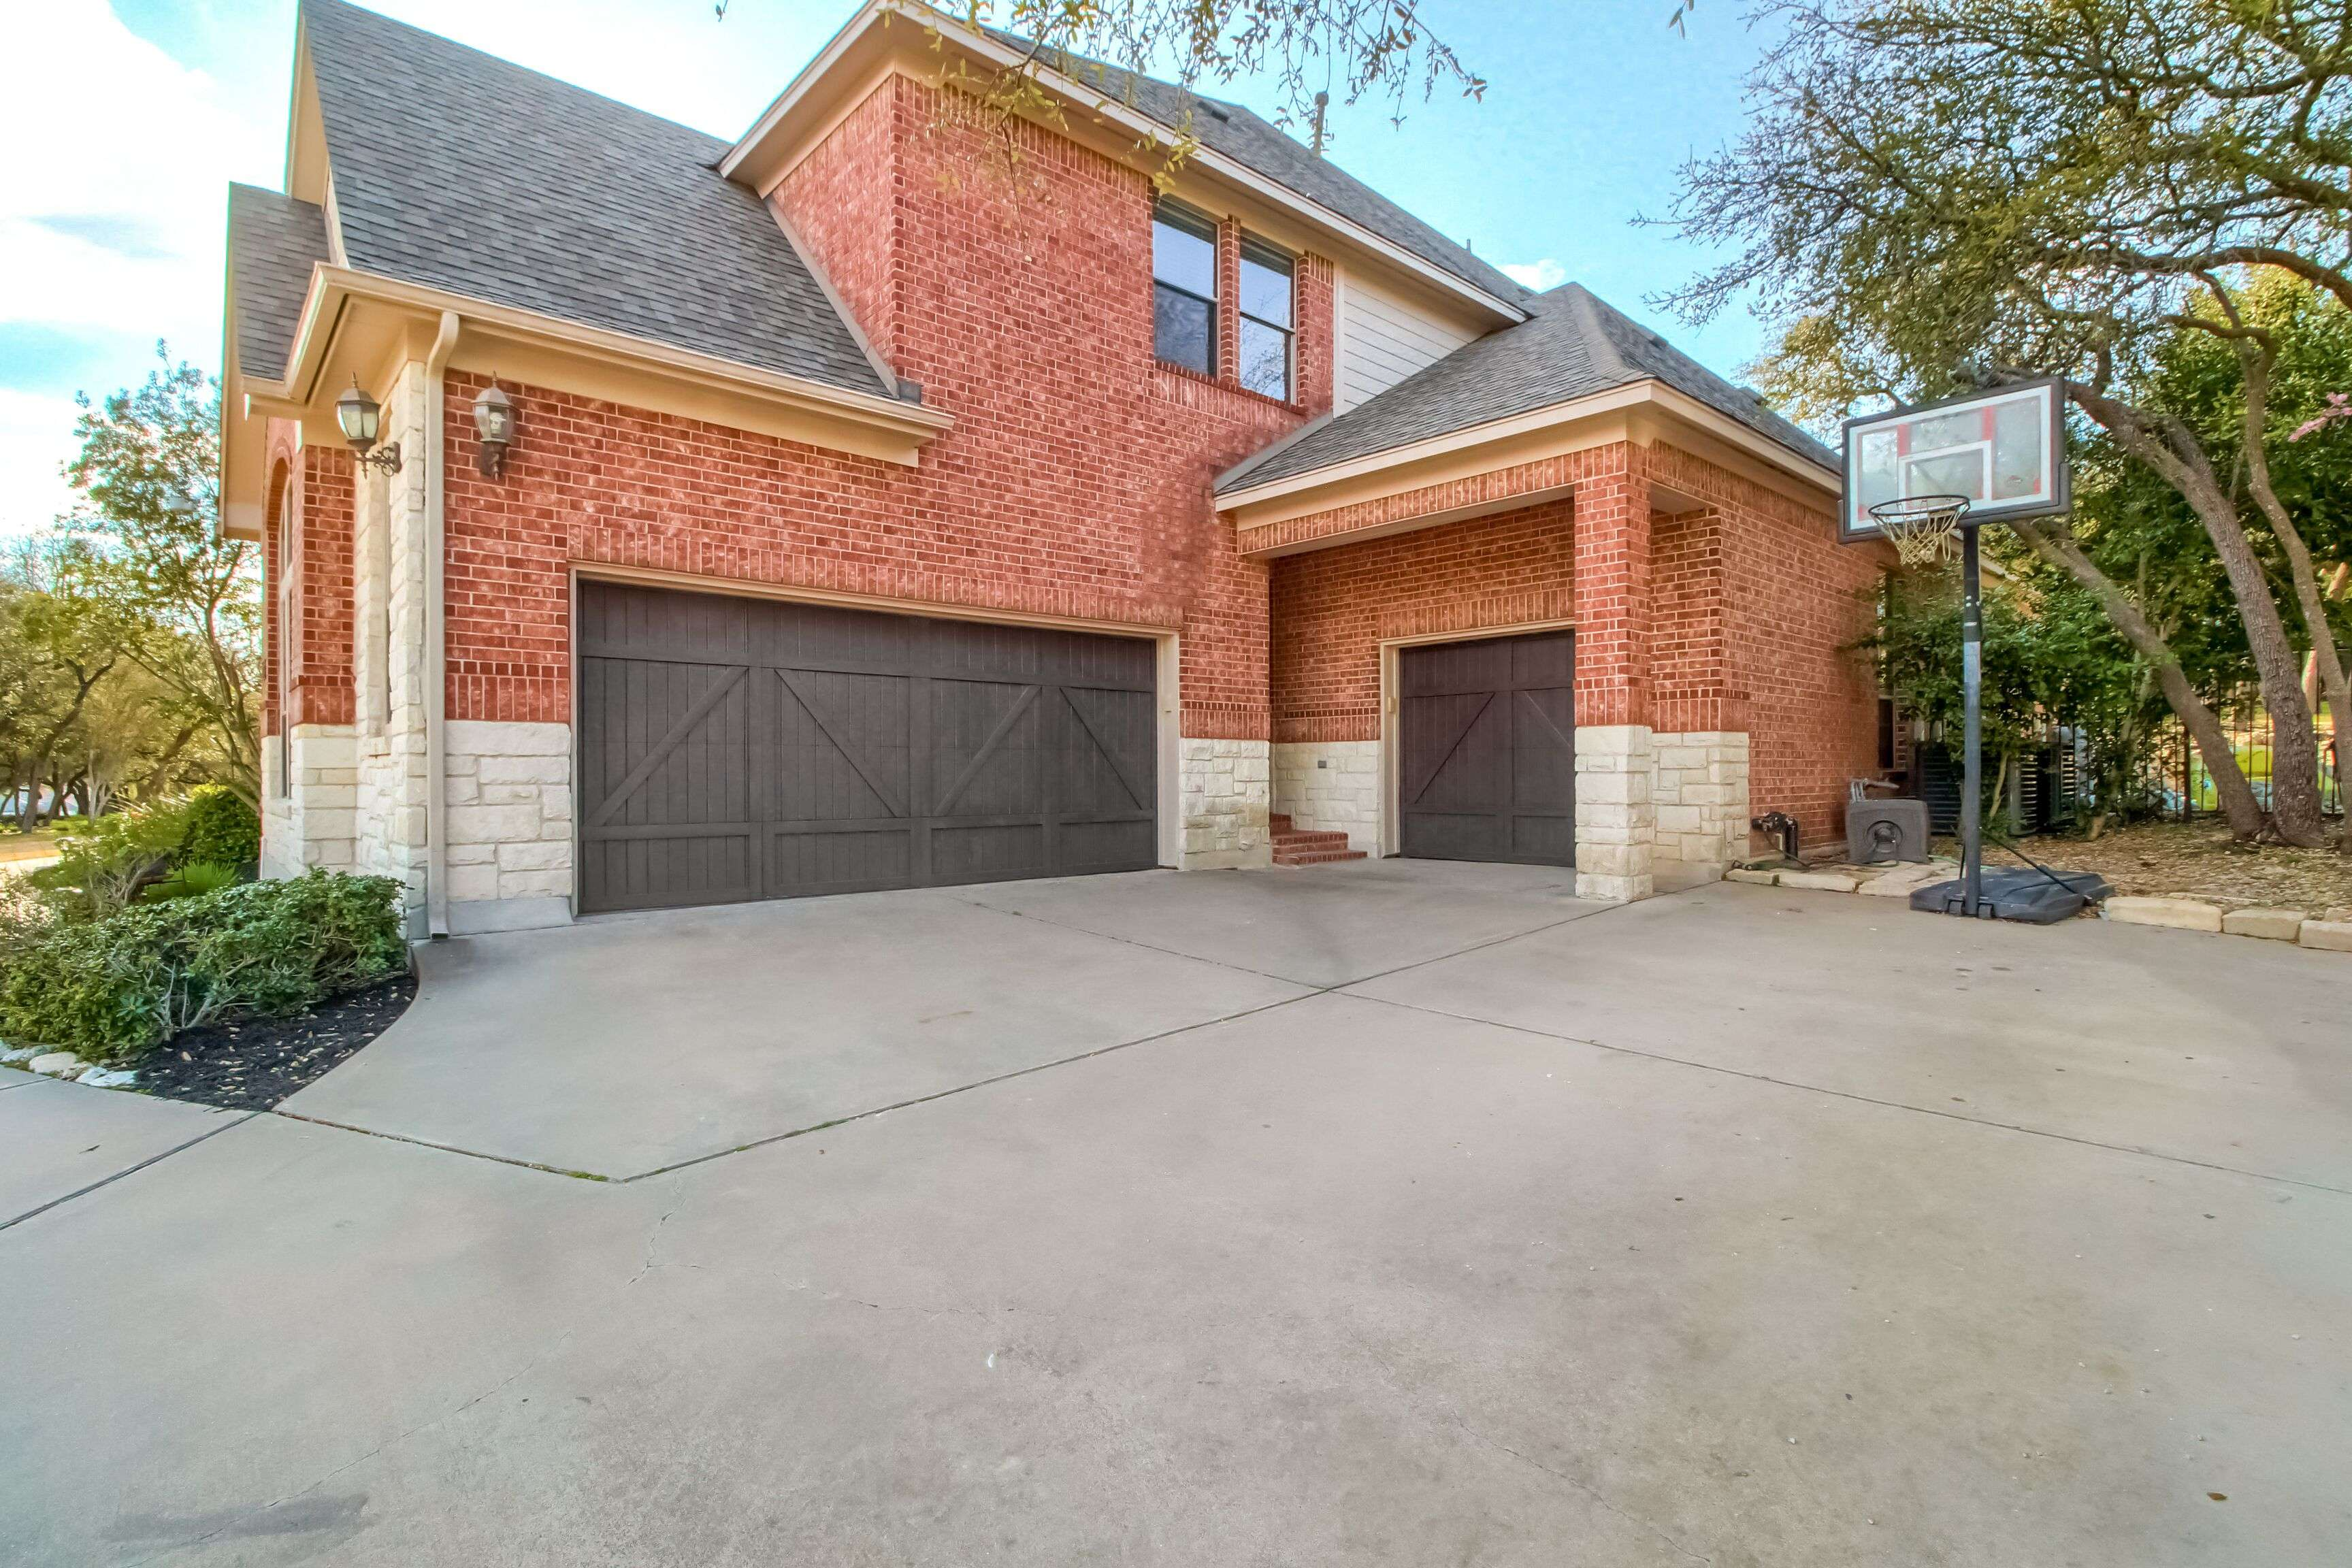 Home for sale Grand Mesa Leander TX